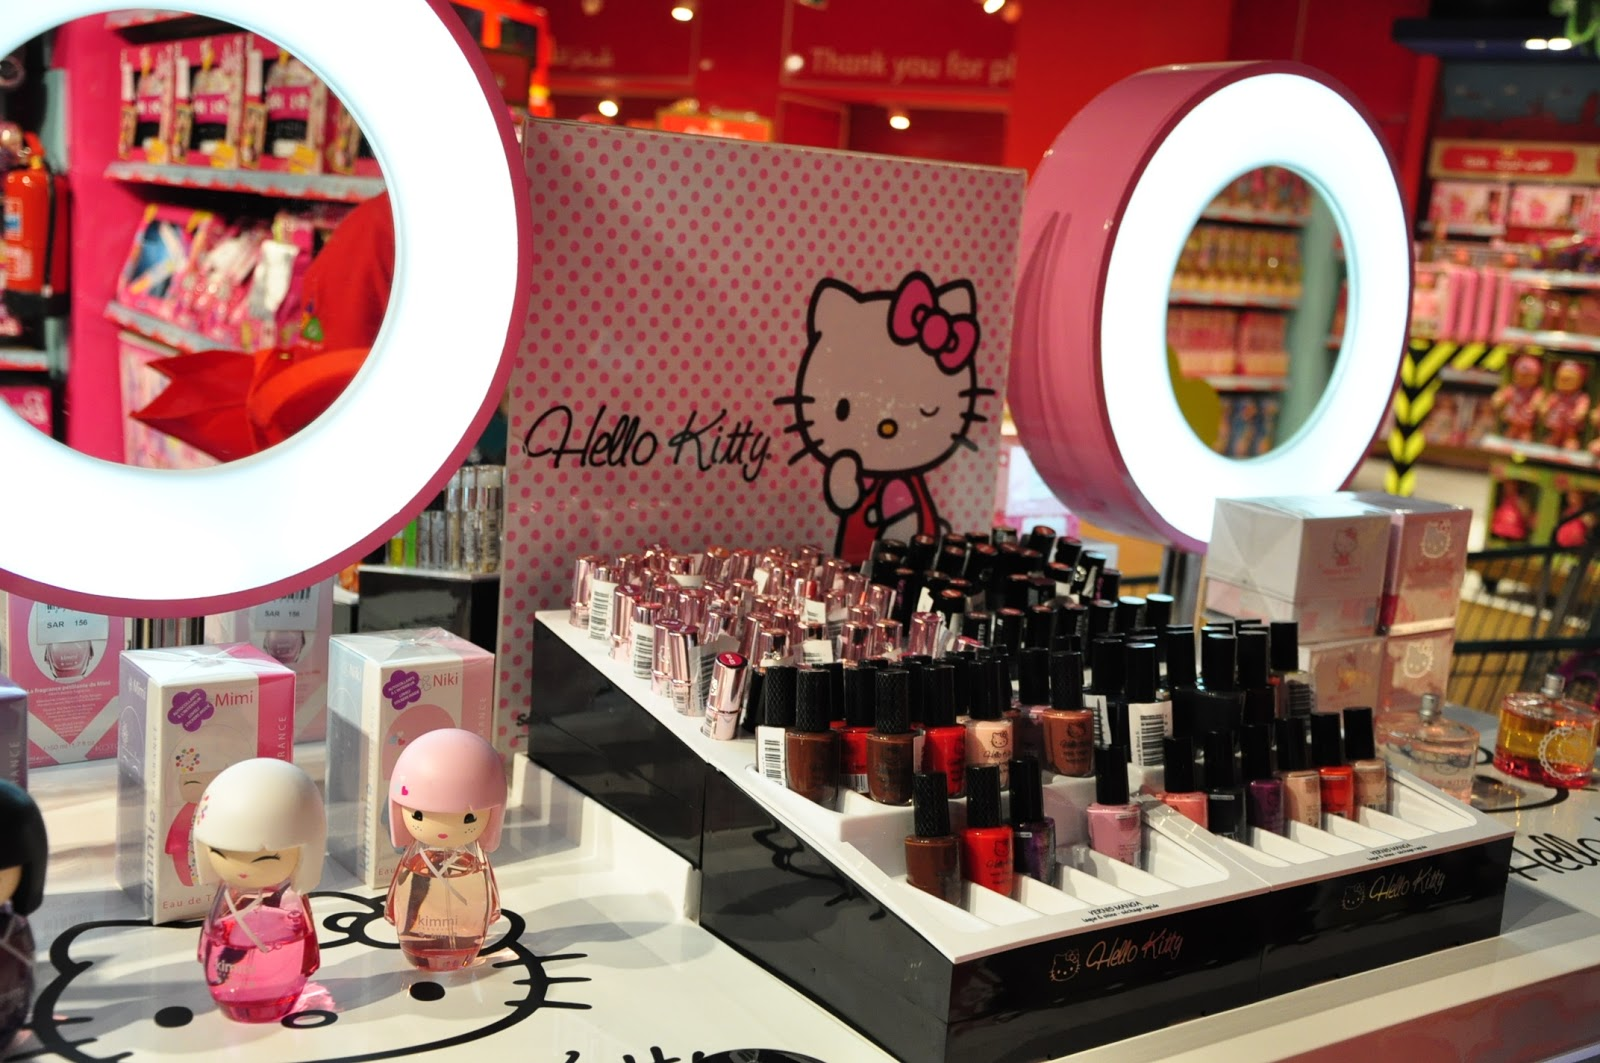 7bc2a3ae8 Hello Kitty makeup in the middle of the toy store! Whaaaat?!?!?! No words  could explain how schocked and happy I was LOL.